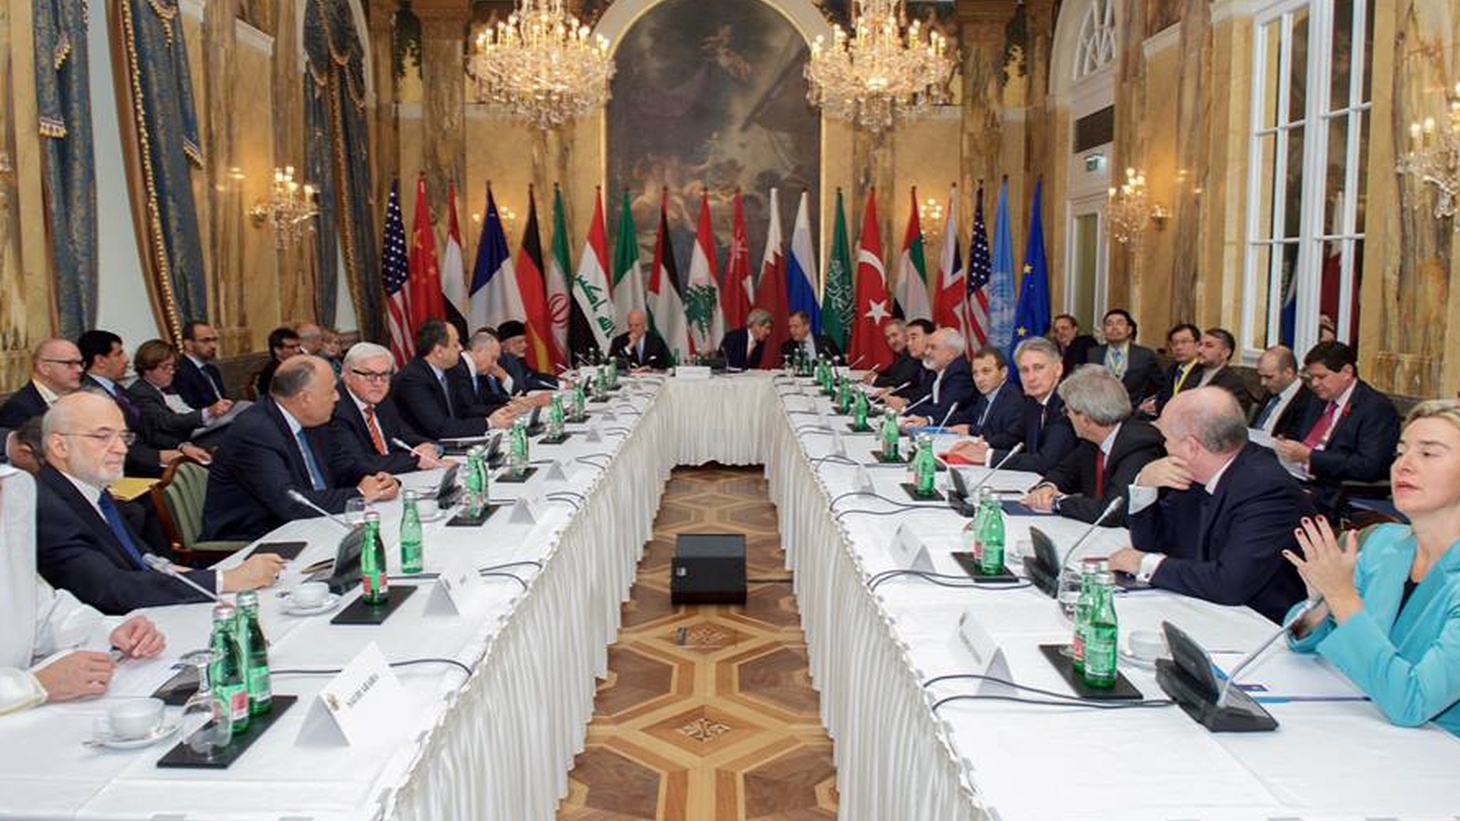 With agreement that Syria's civil war needs a diplomatic solution, 17 nations met for seven hours last week to discuss an agenda. But Syria's Assad regime and rebel forces weren't there — and the fighting continues. Is a diplomatic solution for Syria possible?